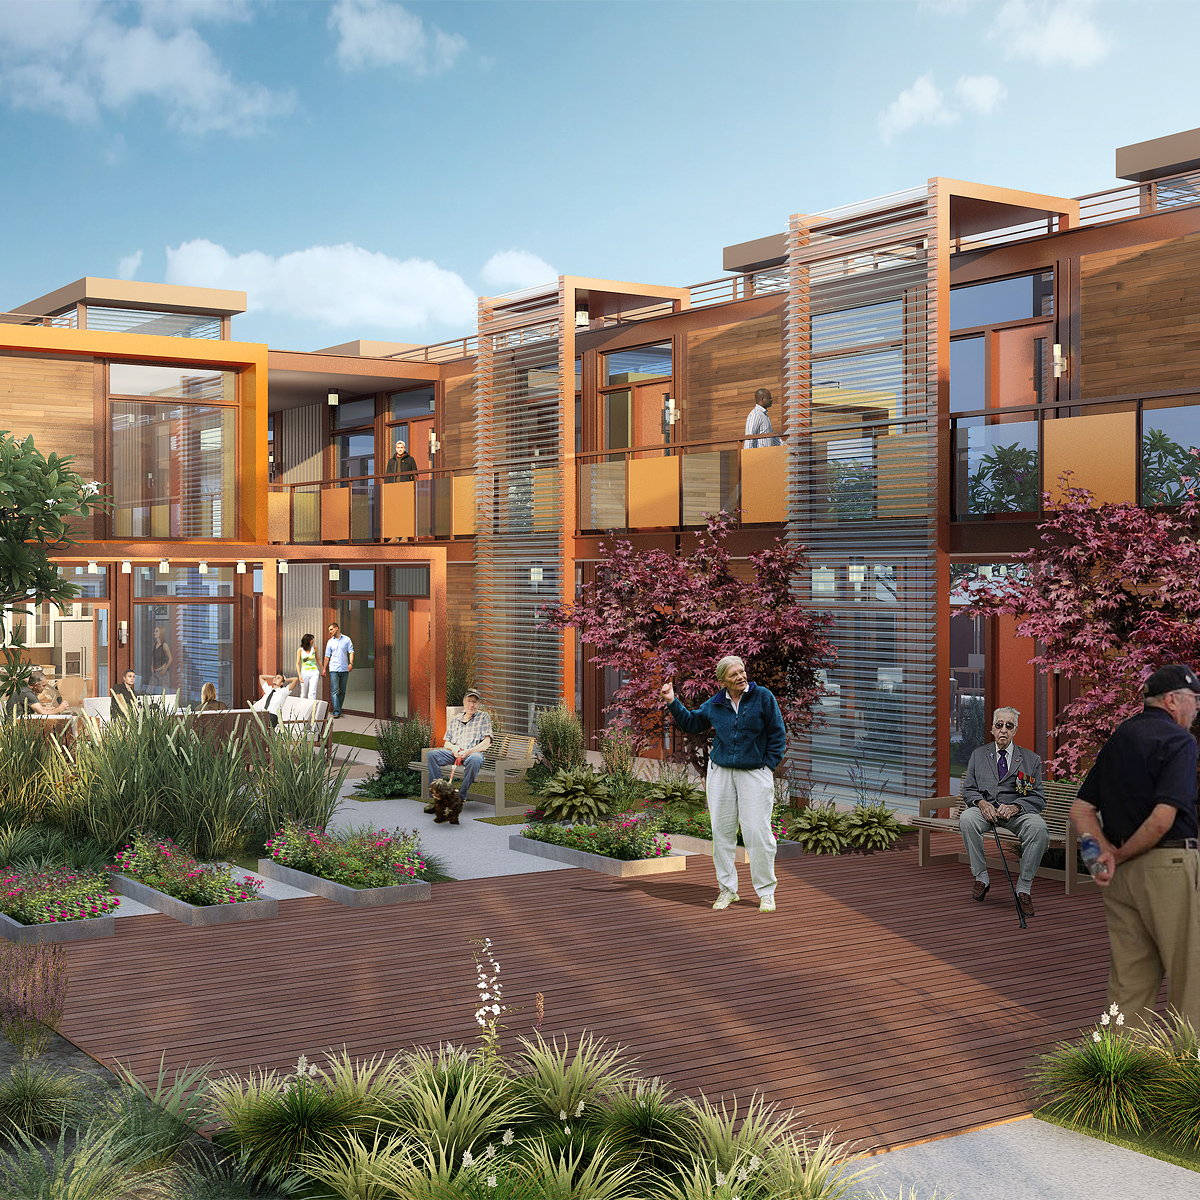 Potter's Lane - Eco-Friendly Housing Project Breaks Ground to End Veteran Homelessness